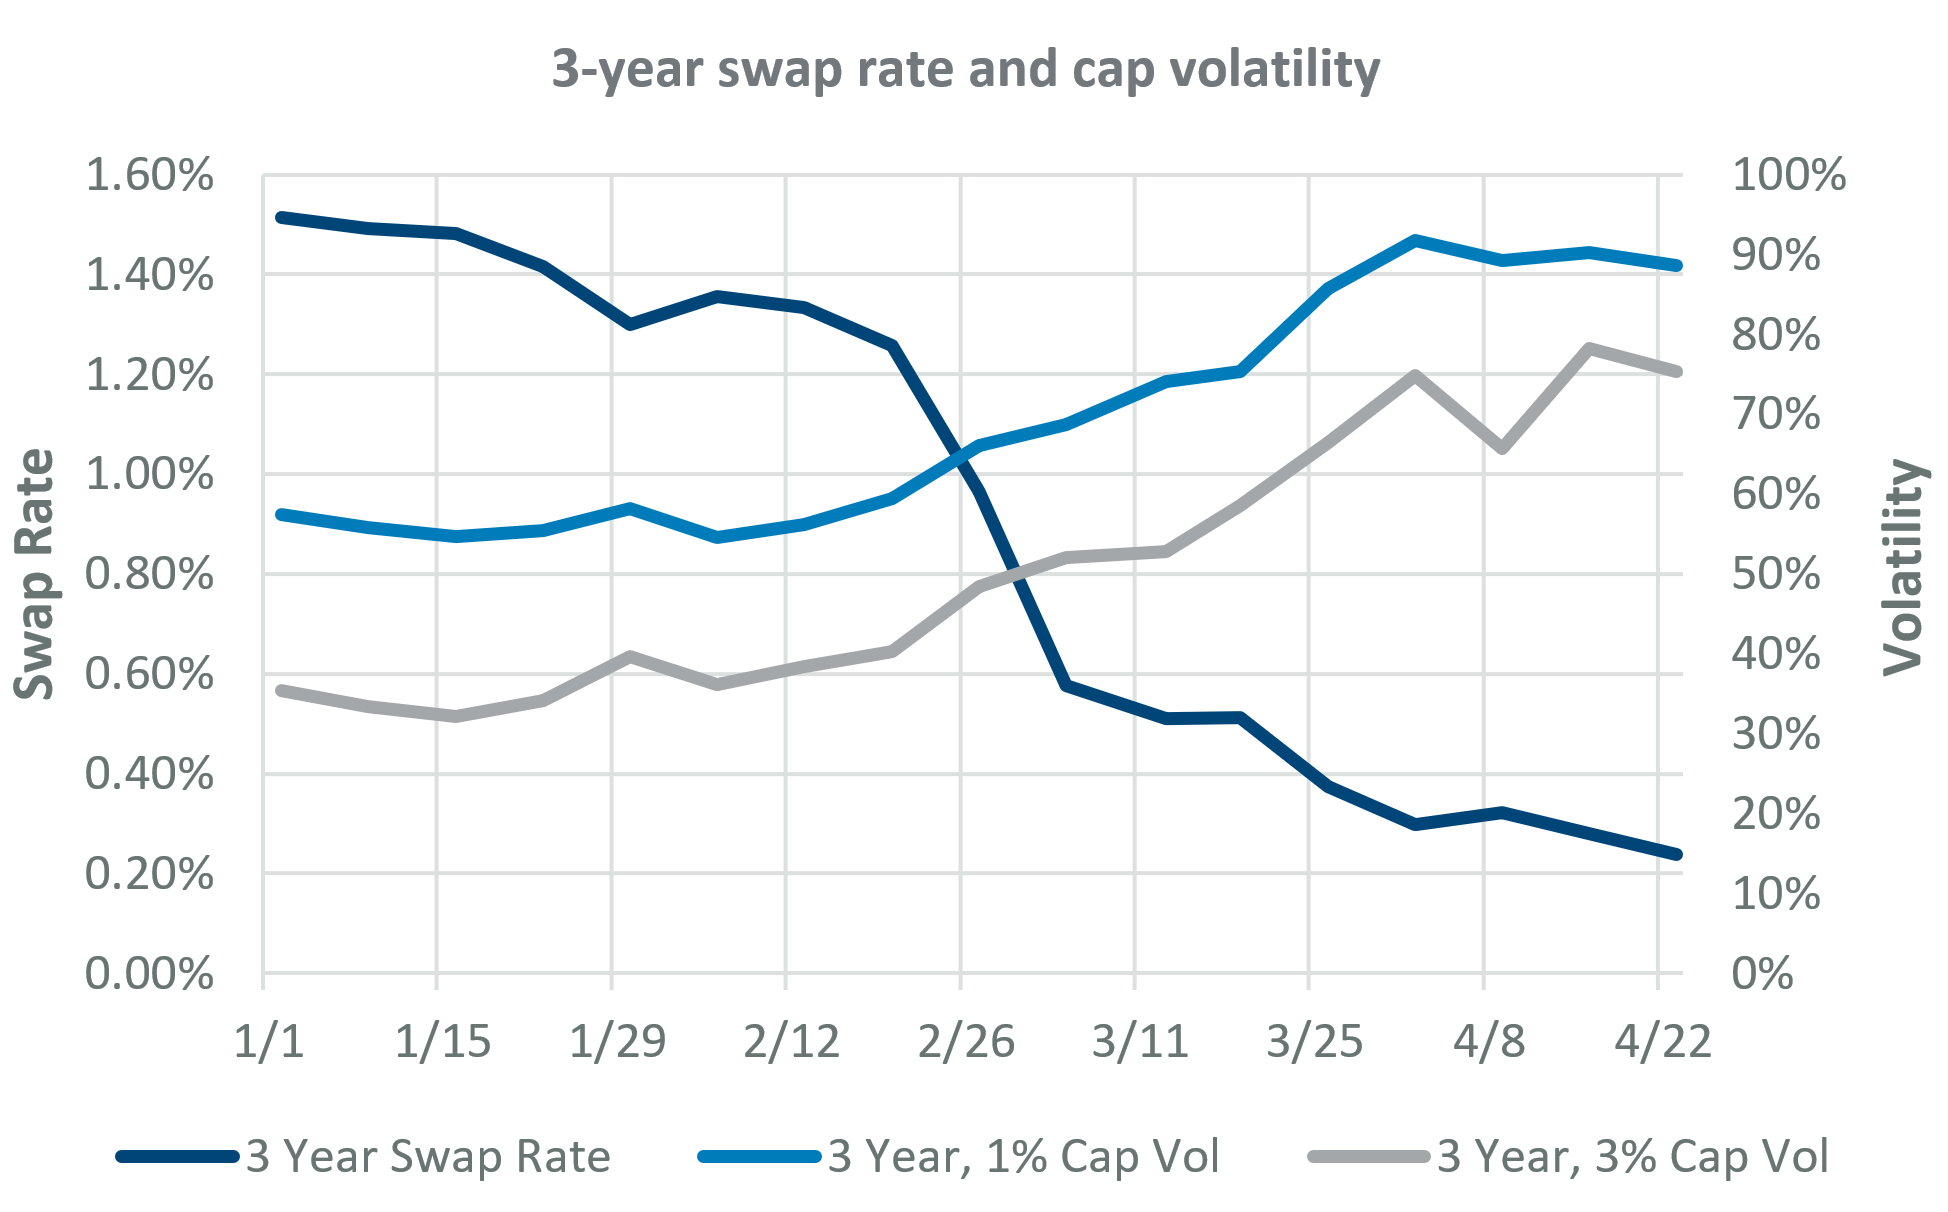 3-year swap rate and cap volatility